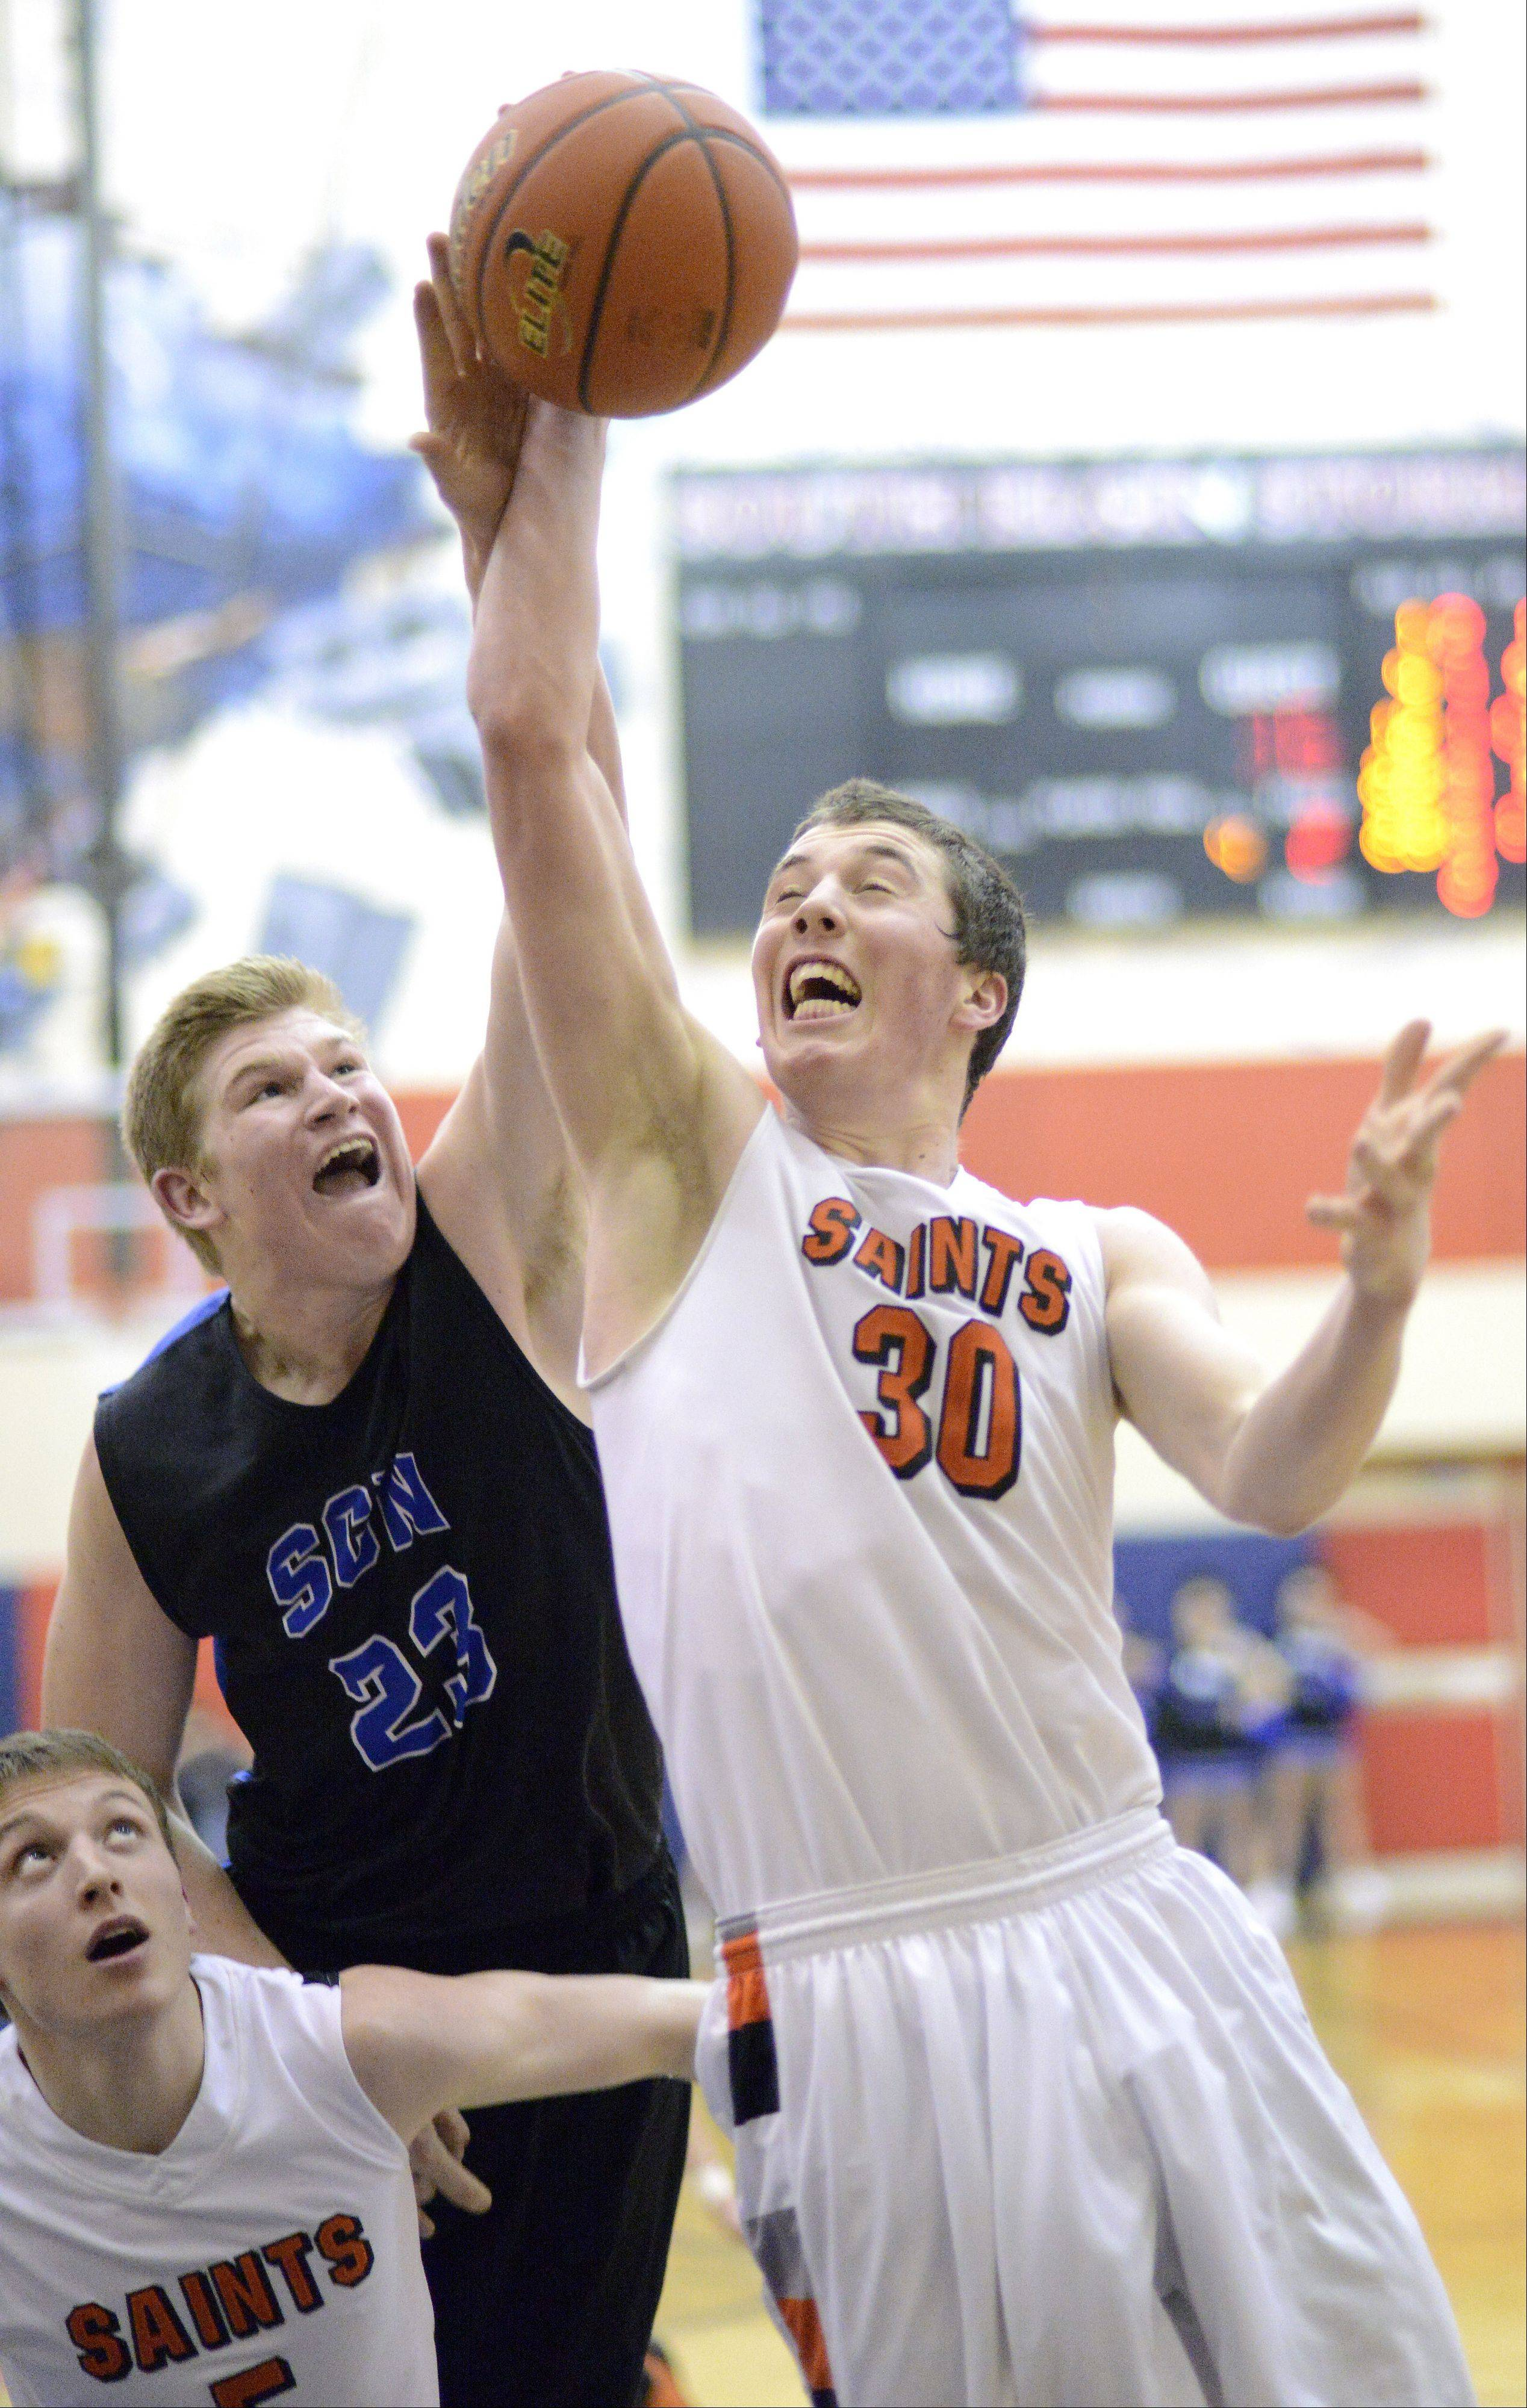 St. Charles North's Justin Stanko tries to swat the ball out of the hands of St. Charles East's David Mason in the third quarter.